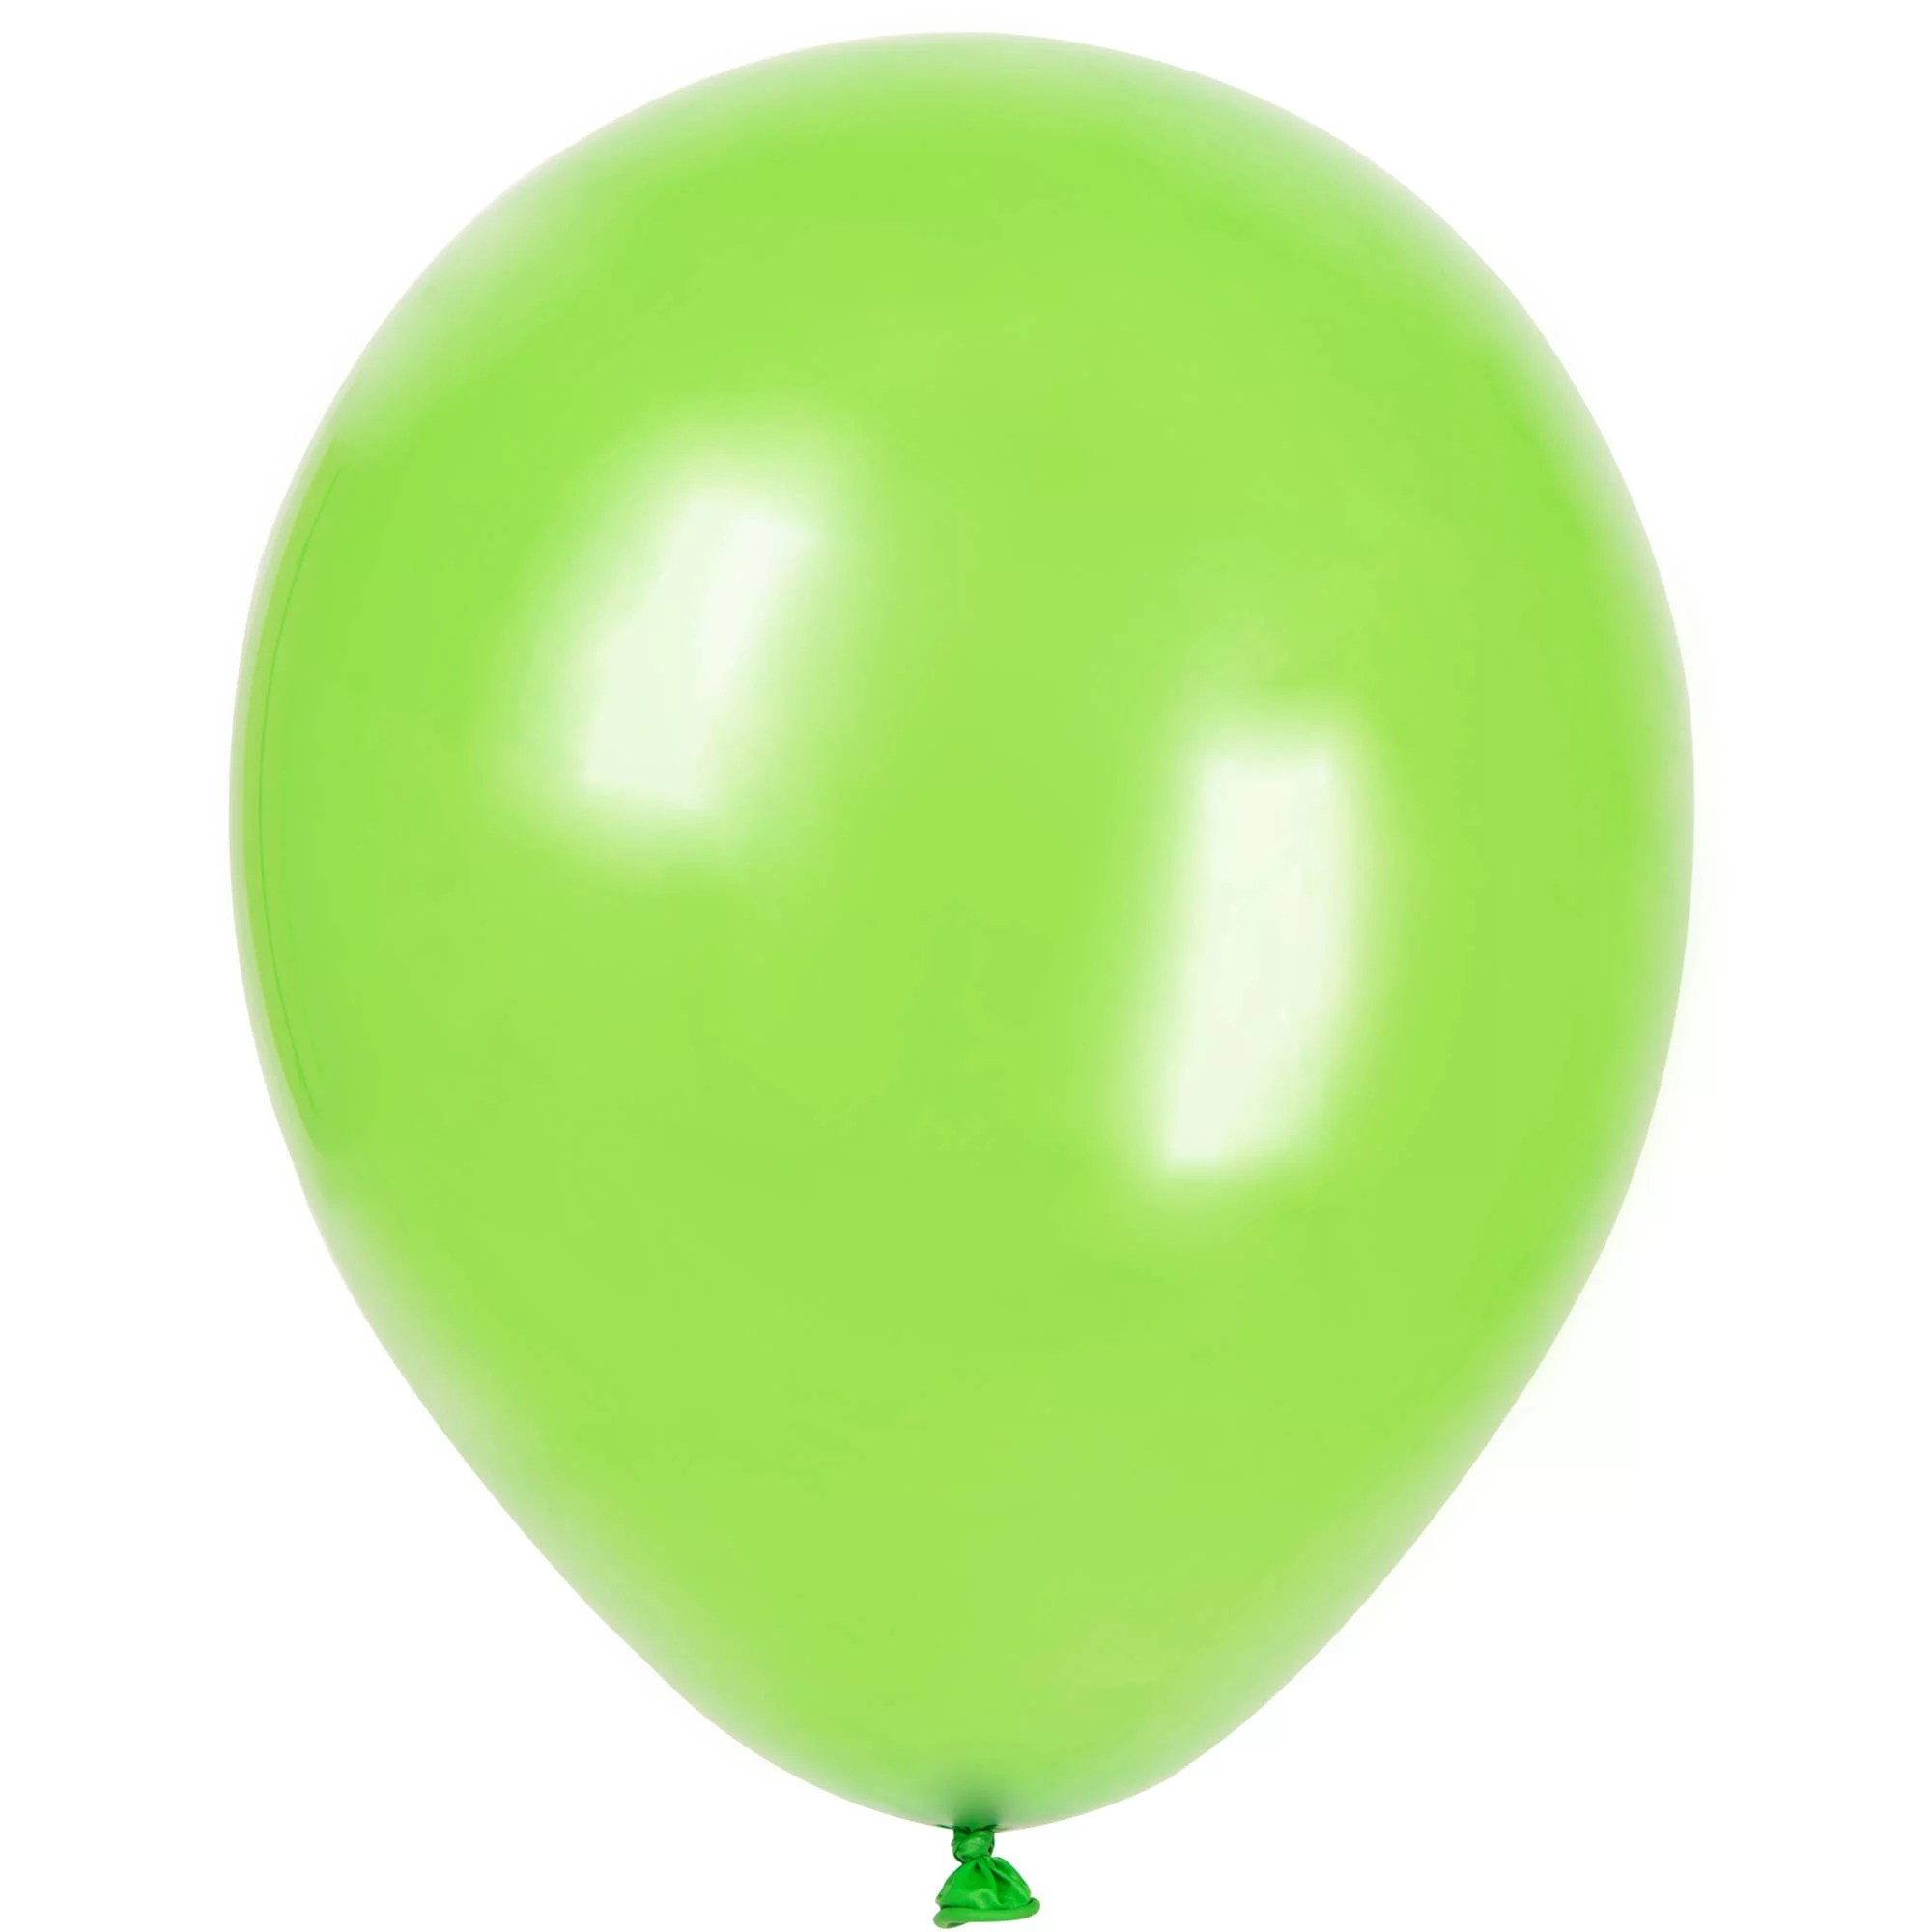 Ballons Latex Balloons Lime Green 12in 10ct Walmart